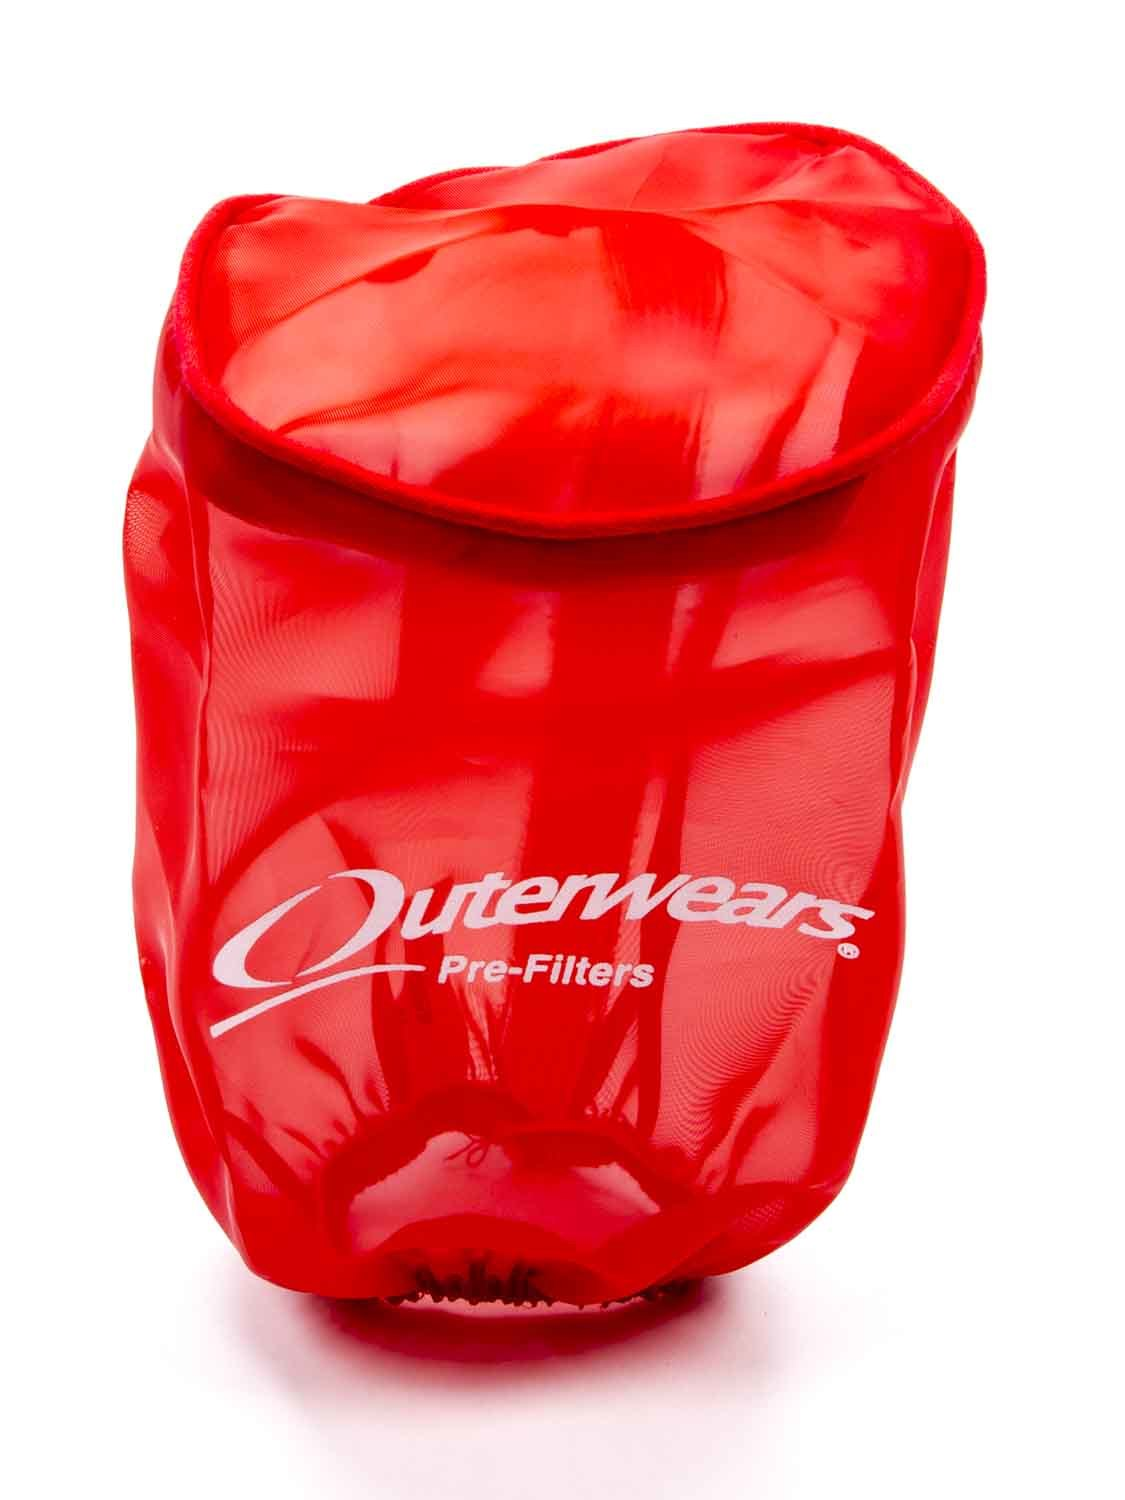 Outerwears 10-1010-03 Air Filter Wrap, Pre Filter, 3-1/2 in OD, 6 in Tall, Top, Polyester, Red, Each